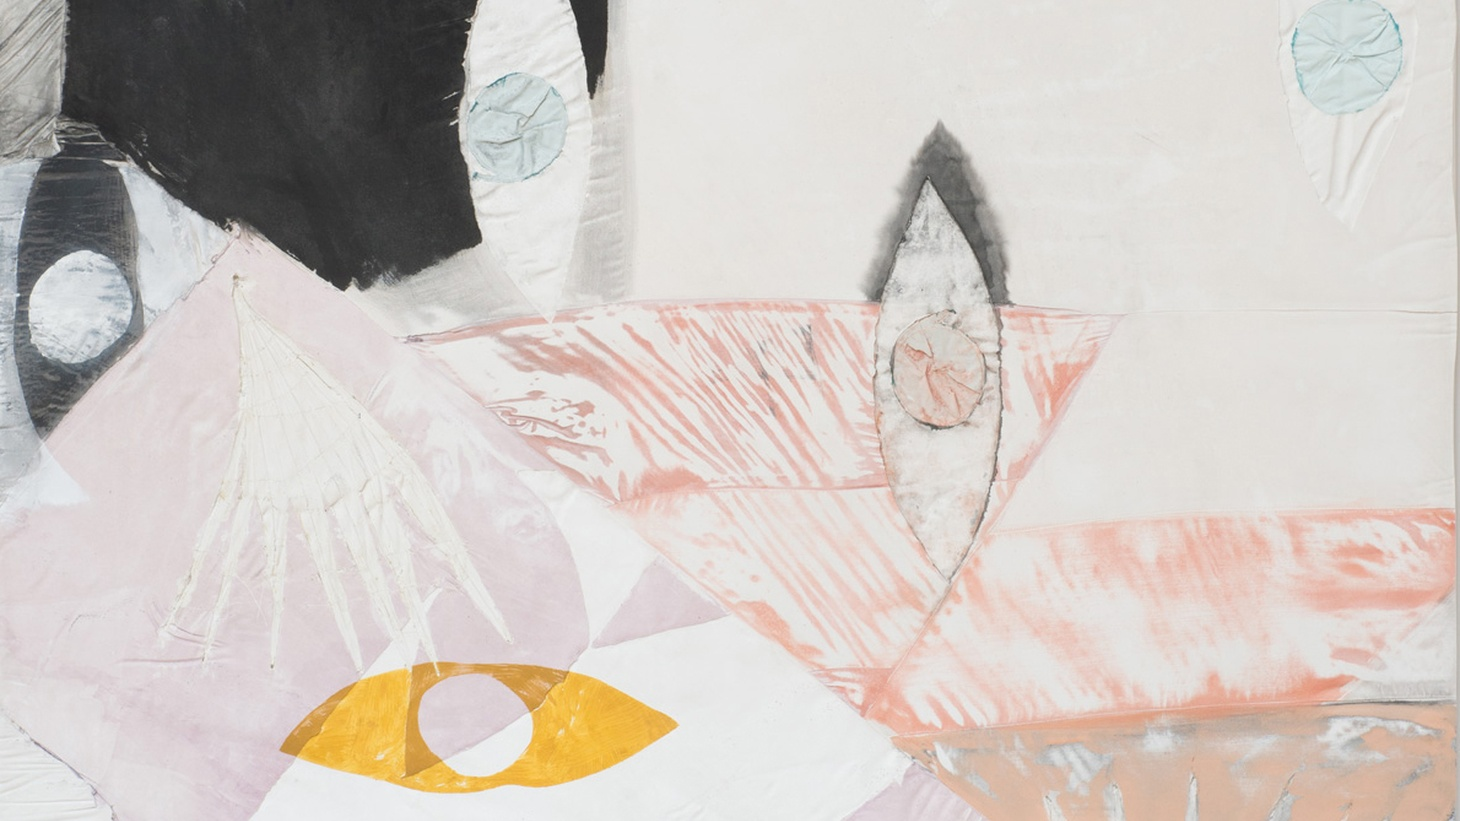 Hunter Drohojowska-Philp likes the quilt-based paintings of Erin Morrison at Samuel Freeman Gallery and a show of sculpture by women at François Ghebaly Gallery.